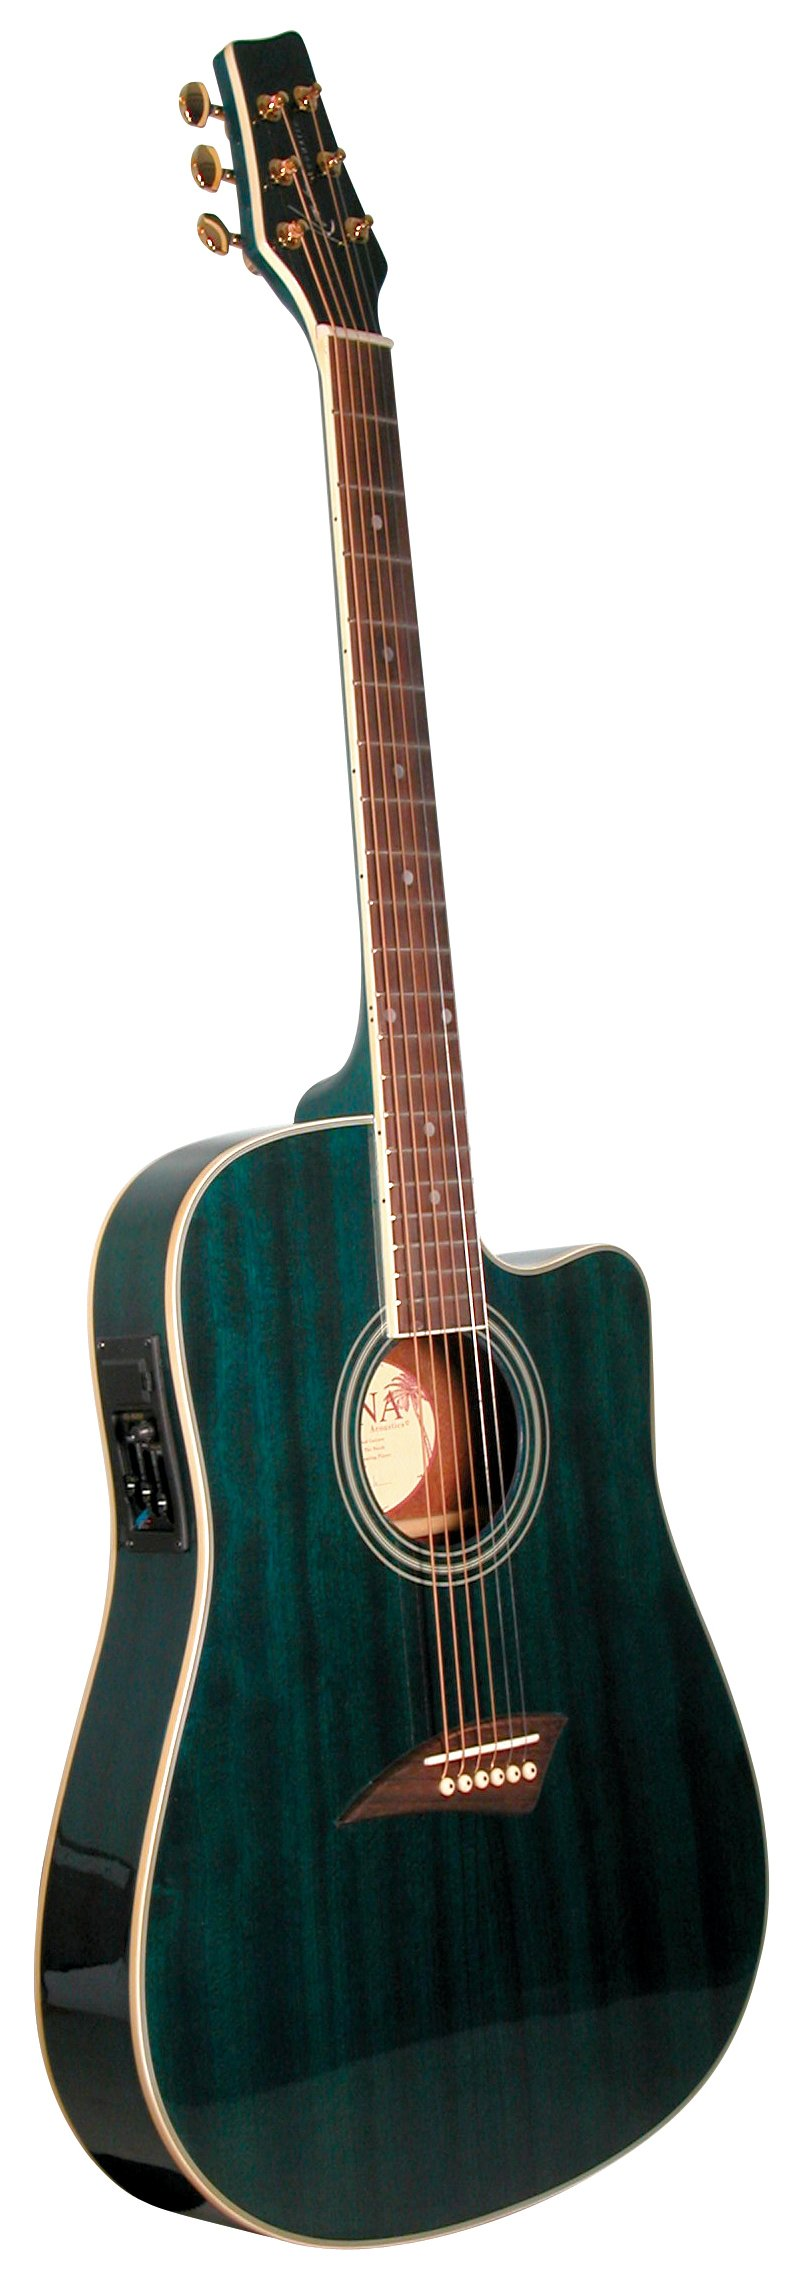 Kona K2TBL Acoustic Electric Dreadnought Cutaway Guitar in Transparent Blue Finish by Attcny